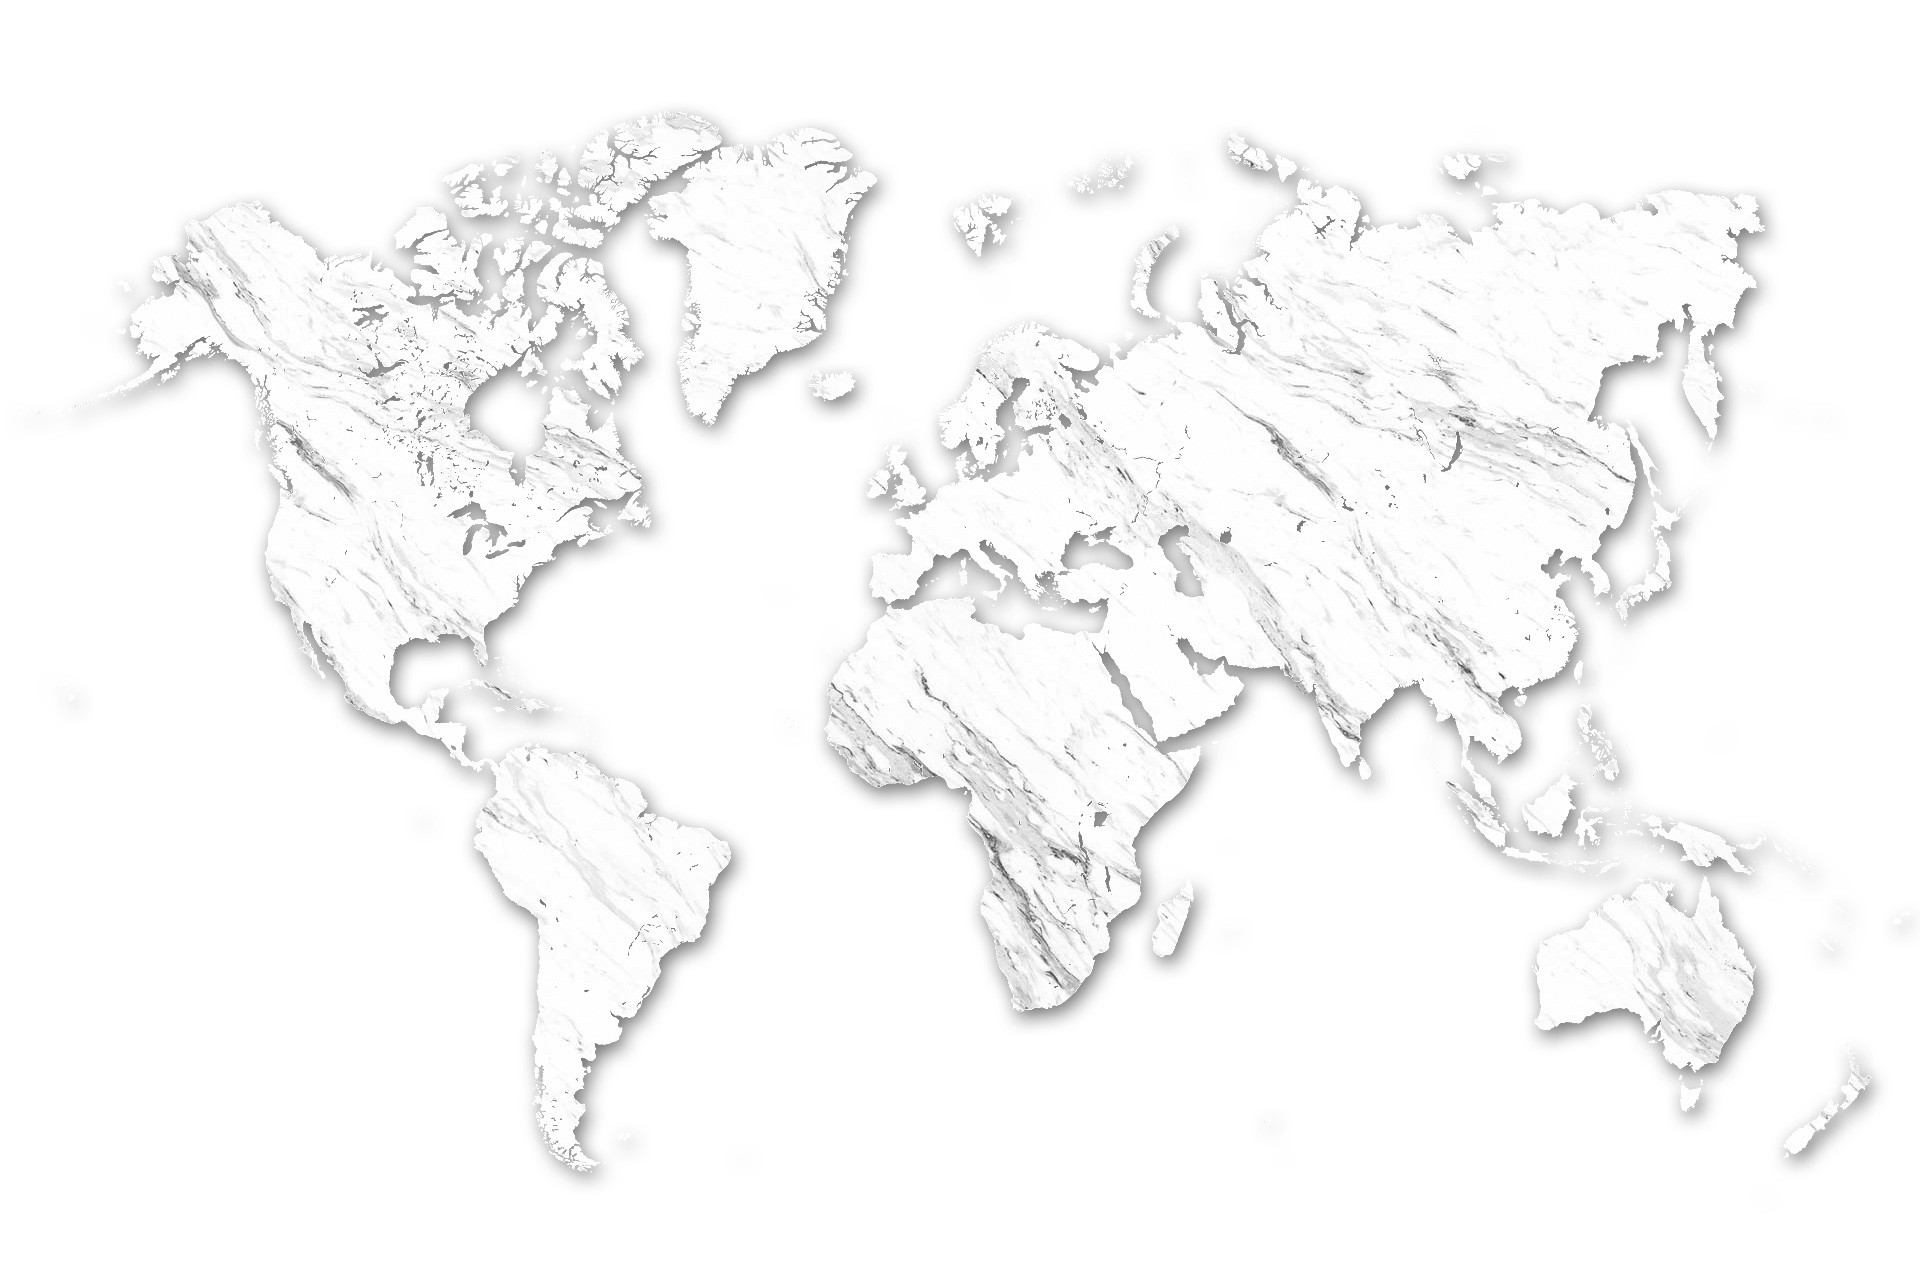 World map drawing tumblr at getdrawings free for personal use 1920x1267 best of world map black and white tumblr havana moon gumiabroncs Gallery